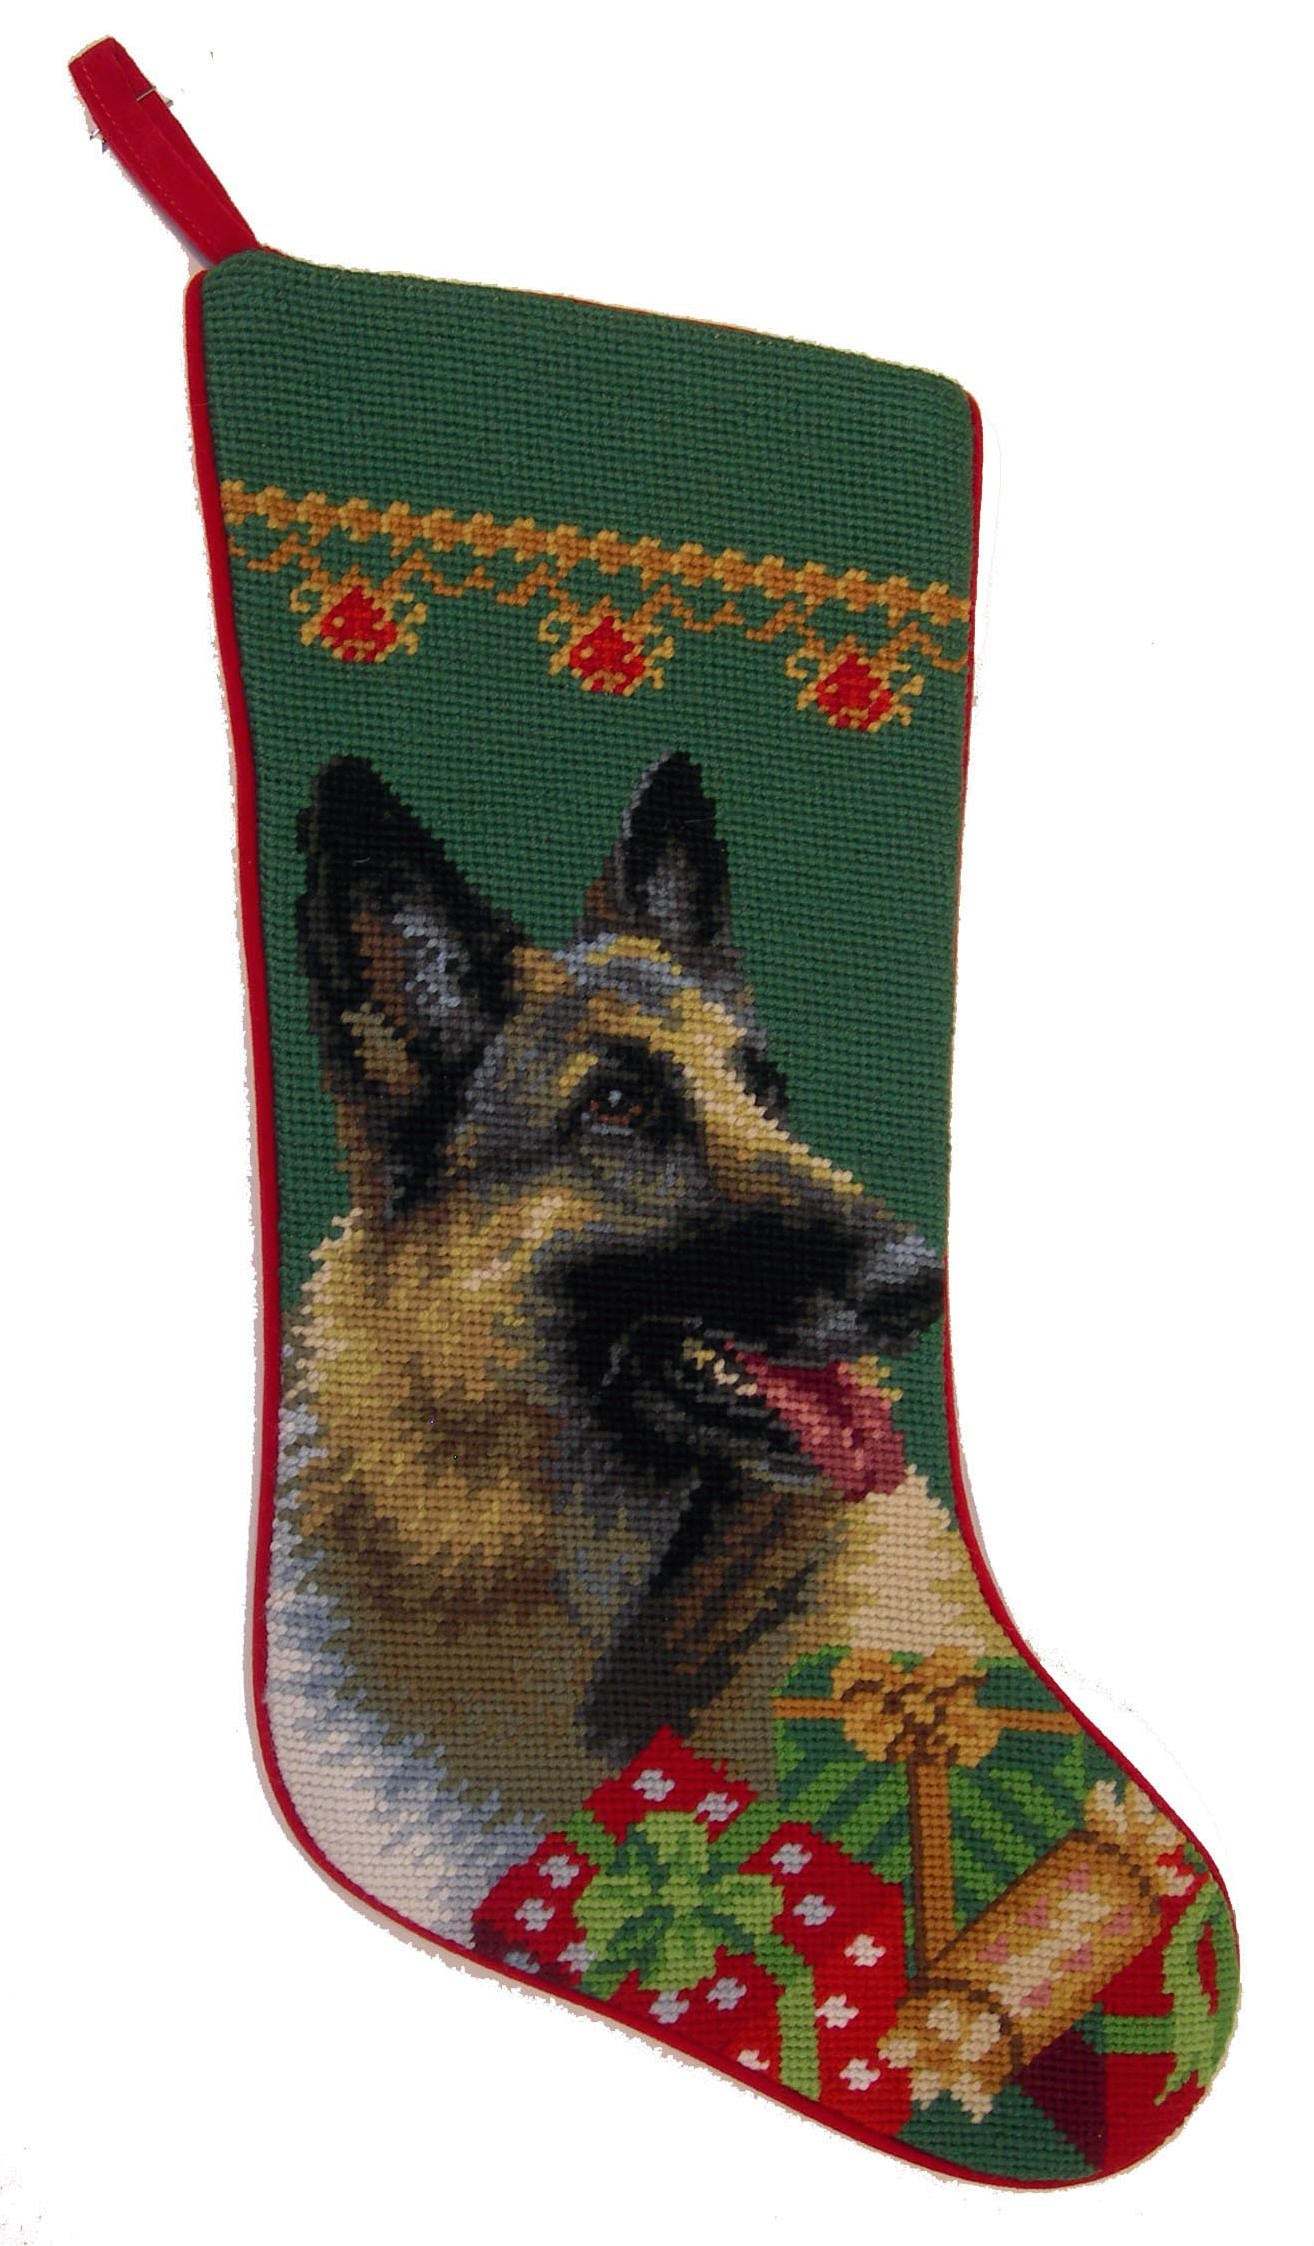 Needlepoint Christmas Dog Breed Stocking - German Shepherd + Presents - A Pet's World